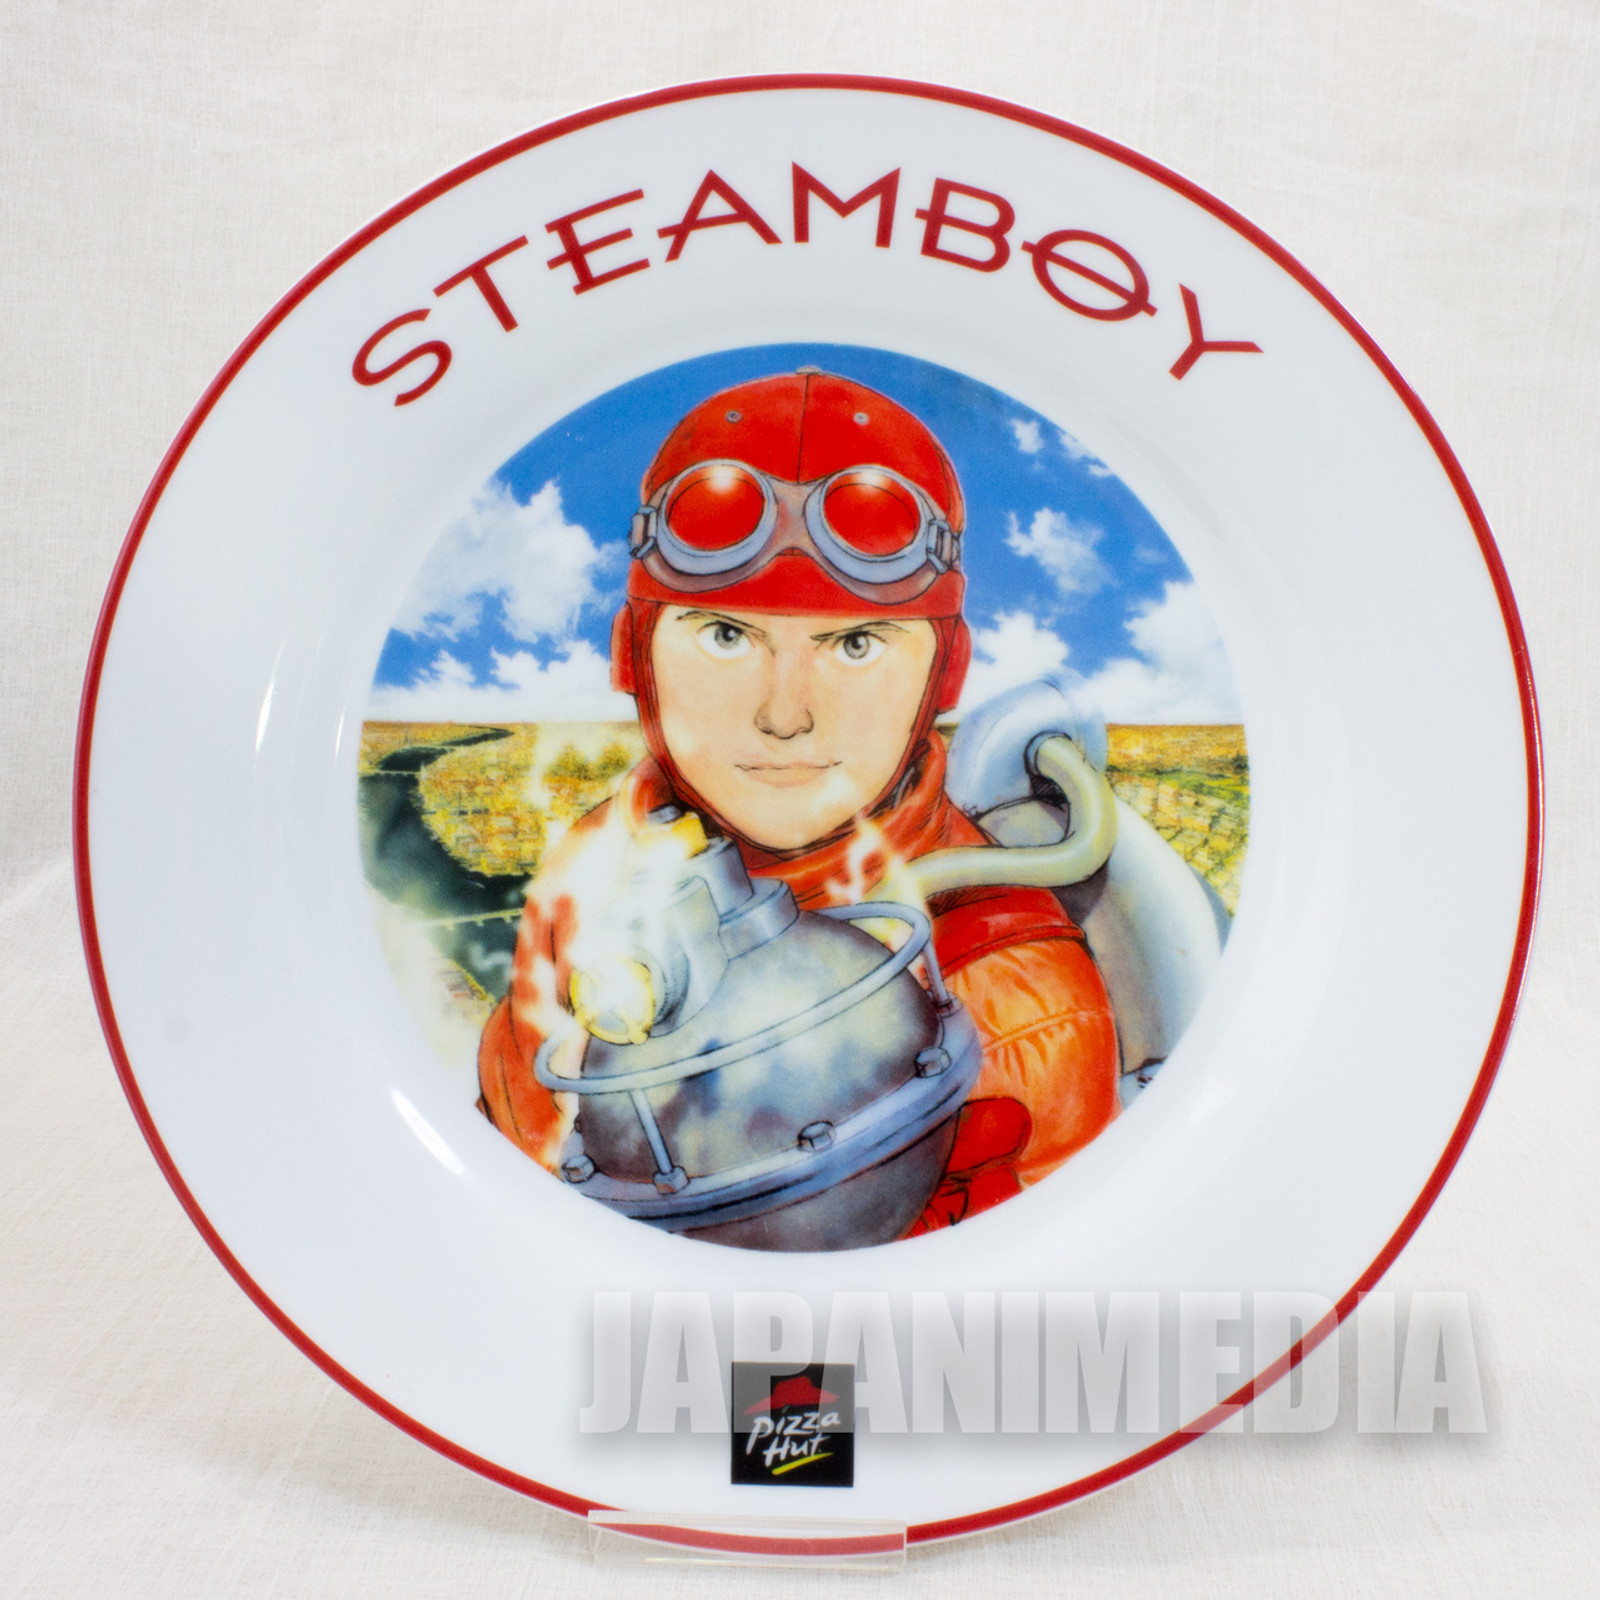 SteamBoy Pizza Hat Picture Plate Dish Otomo Katsuhiro JAPAN ANIME MANGA